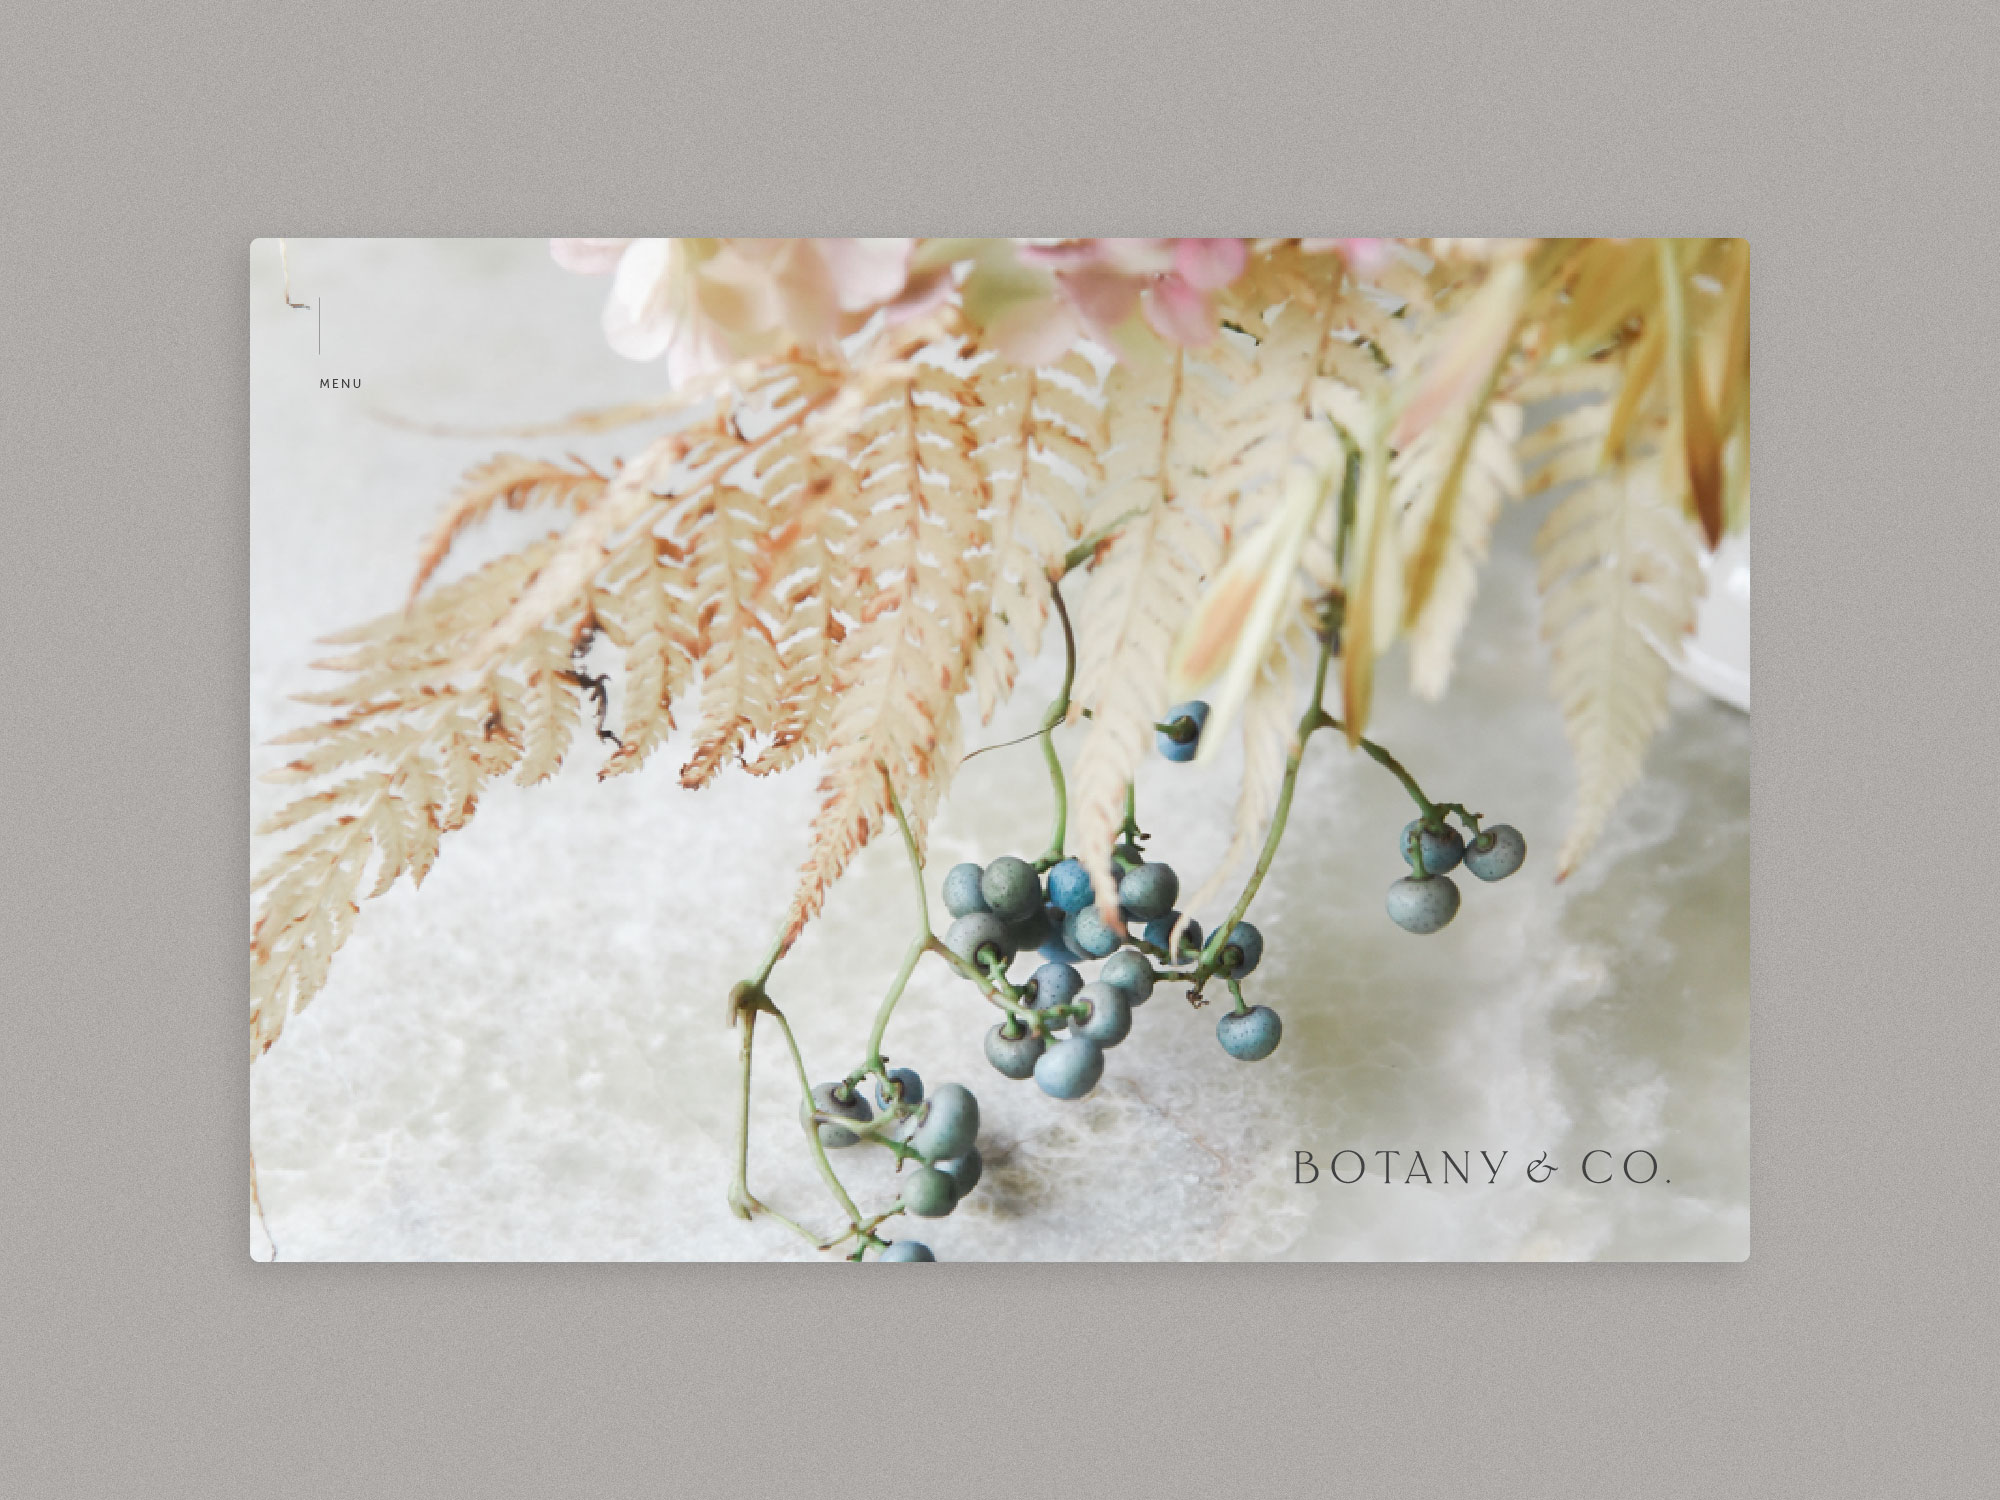 Botany & Co by Kindred Studio